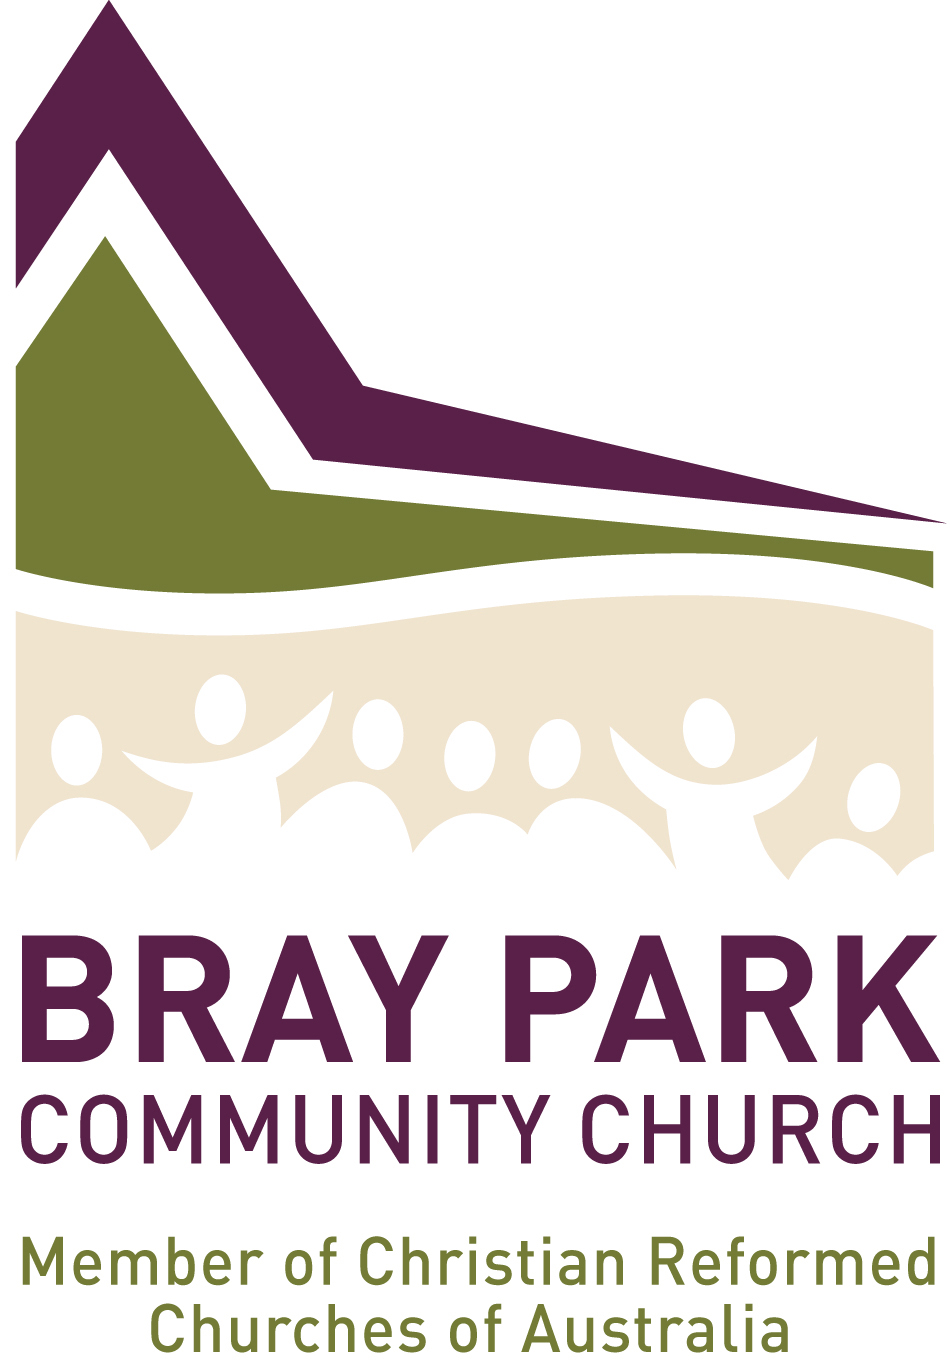 Bray Park Community Church